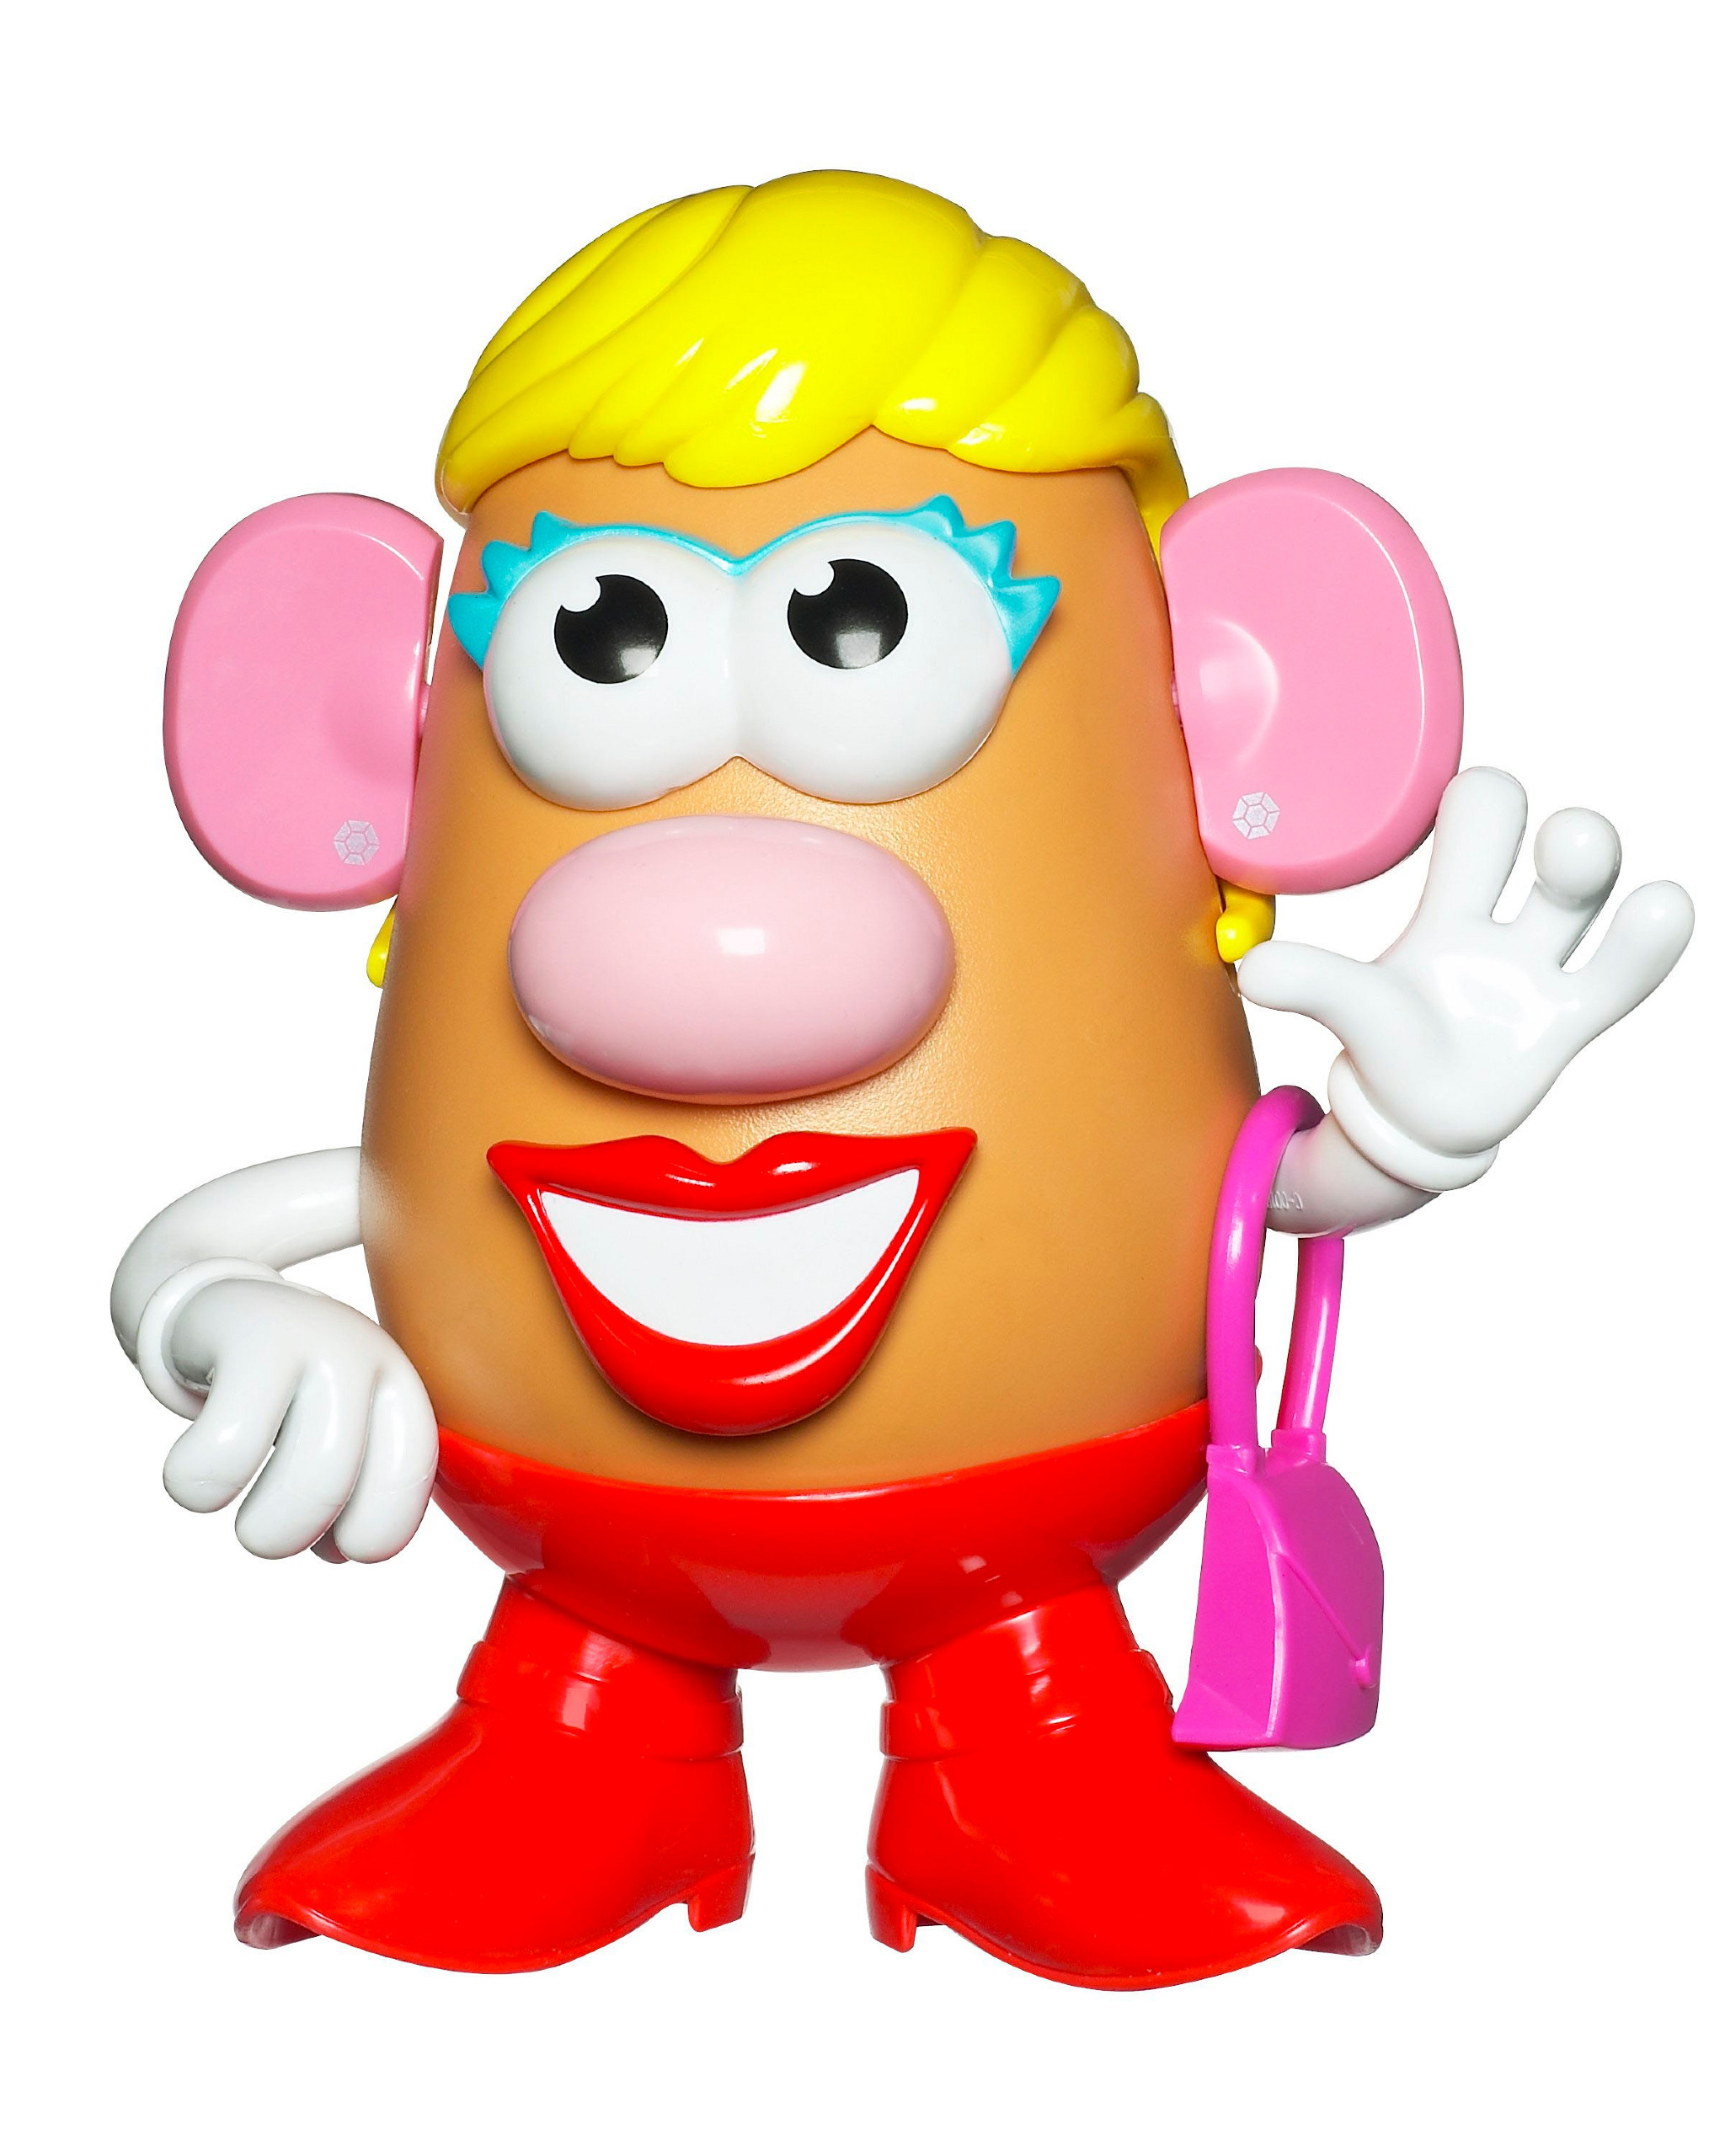 Mr-Mrs-Potato-Head-Hasbro-2.jpg